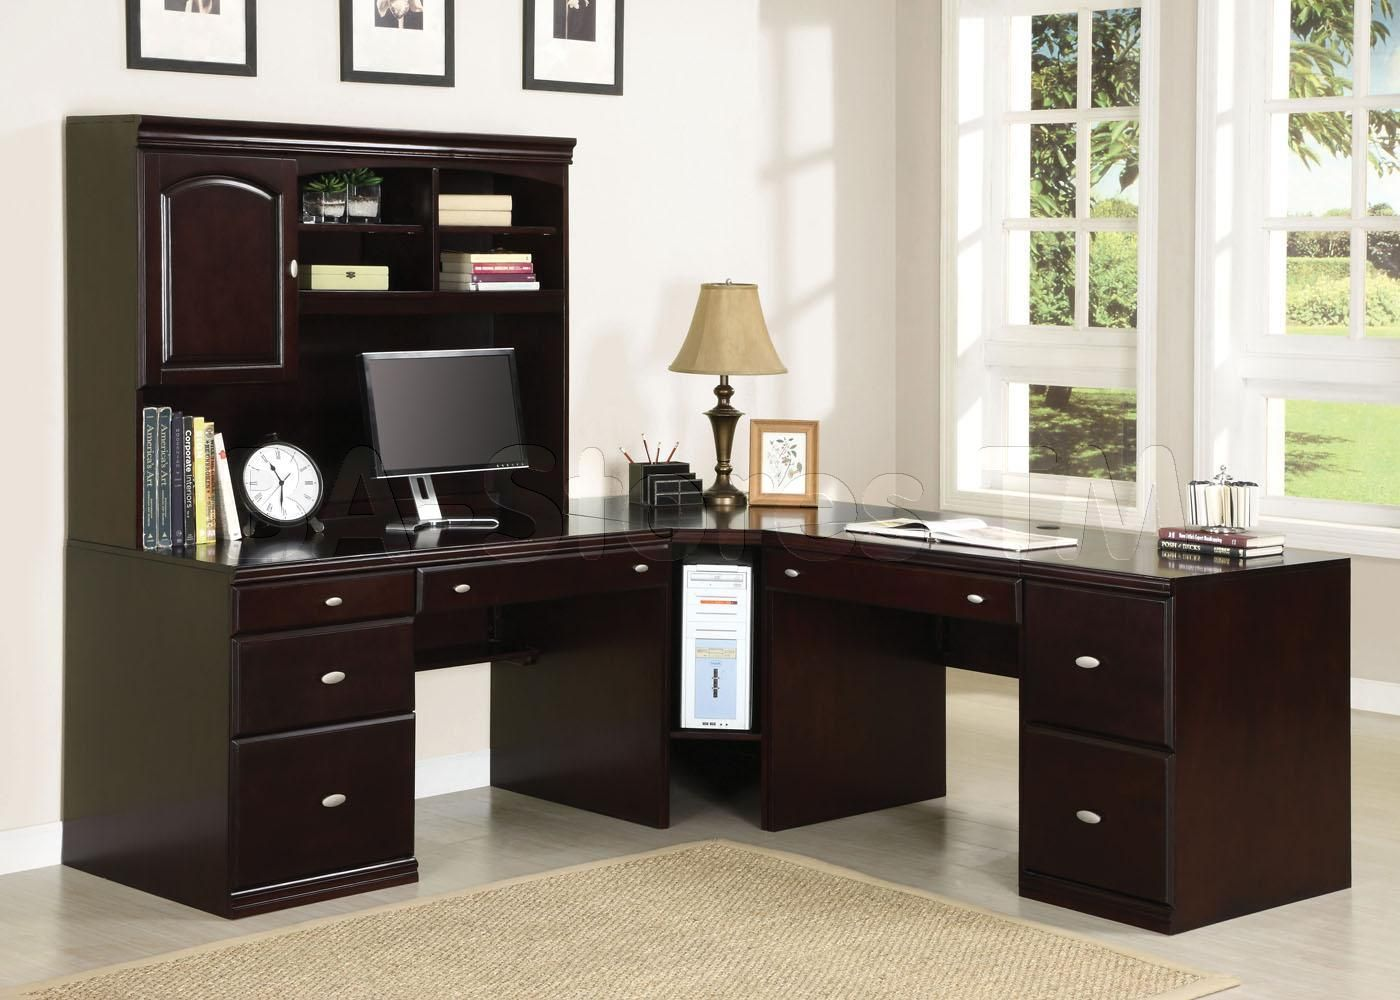 u computer home black uncle small with shaped and rocket corner workstation l desk for vintage cherry office white hutch drawers wood